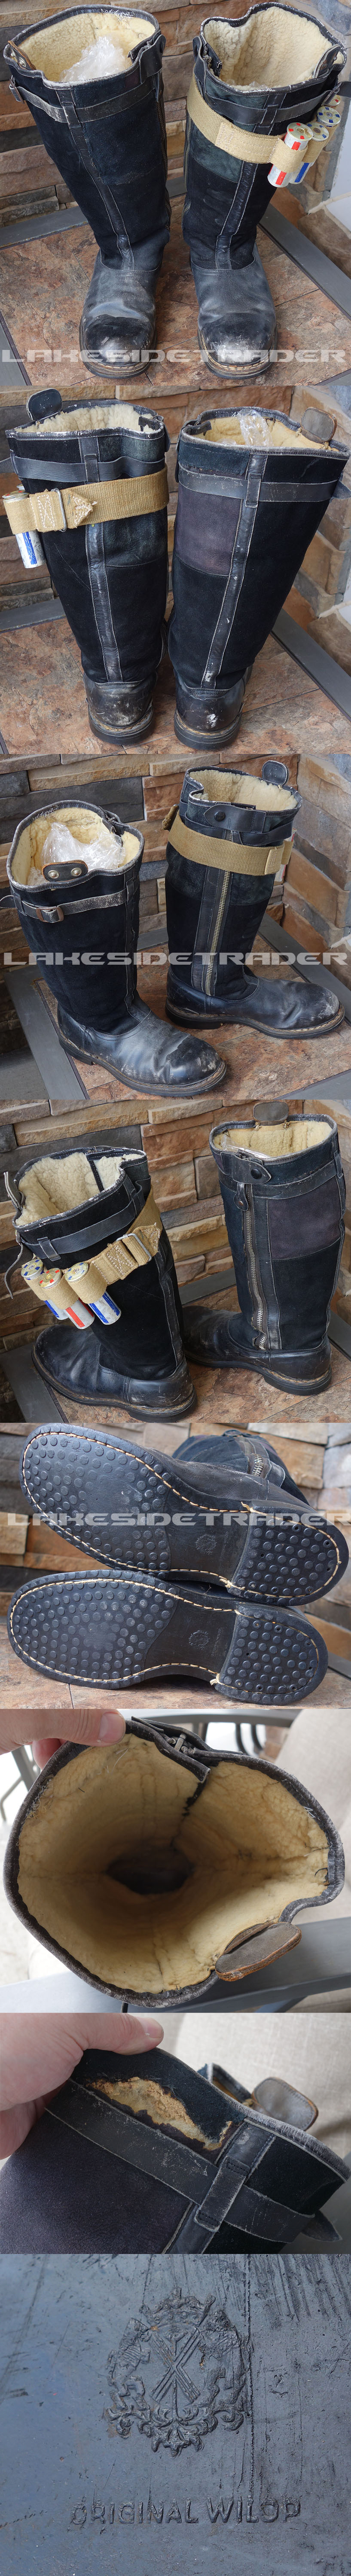 Luftwaffe Electric Heated Leather Flight Boots